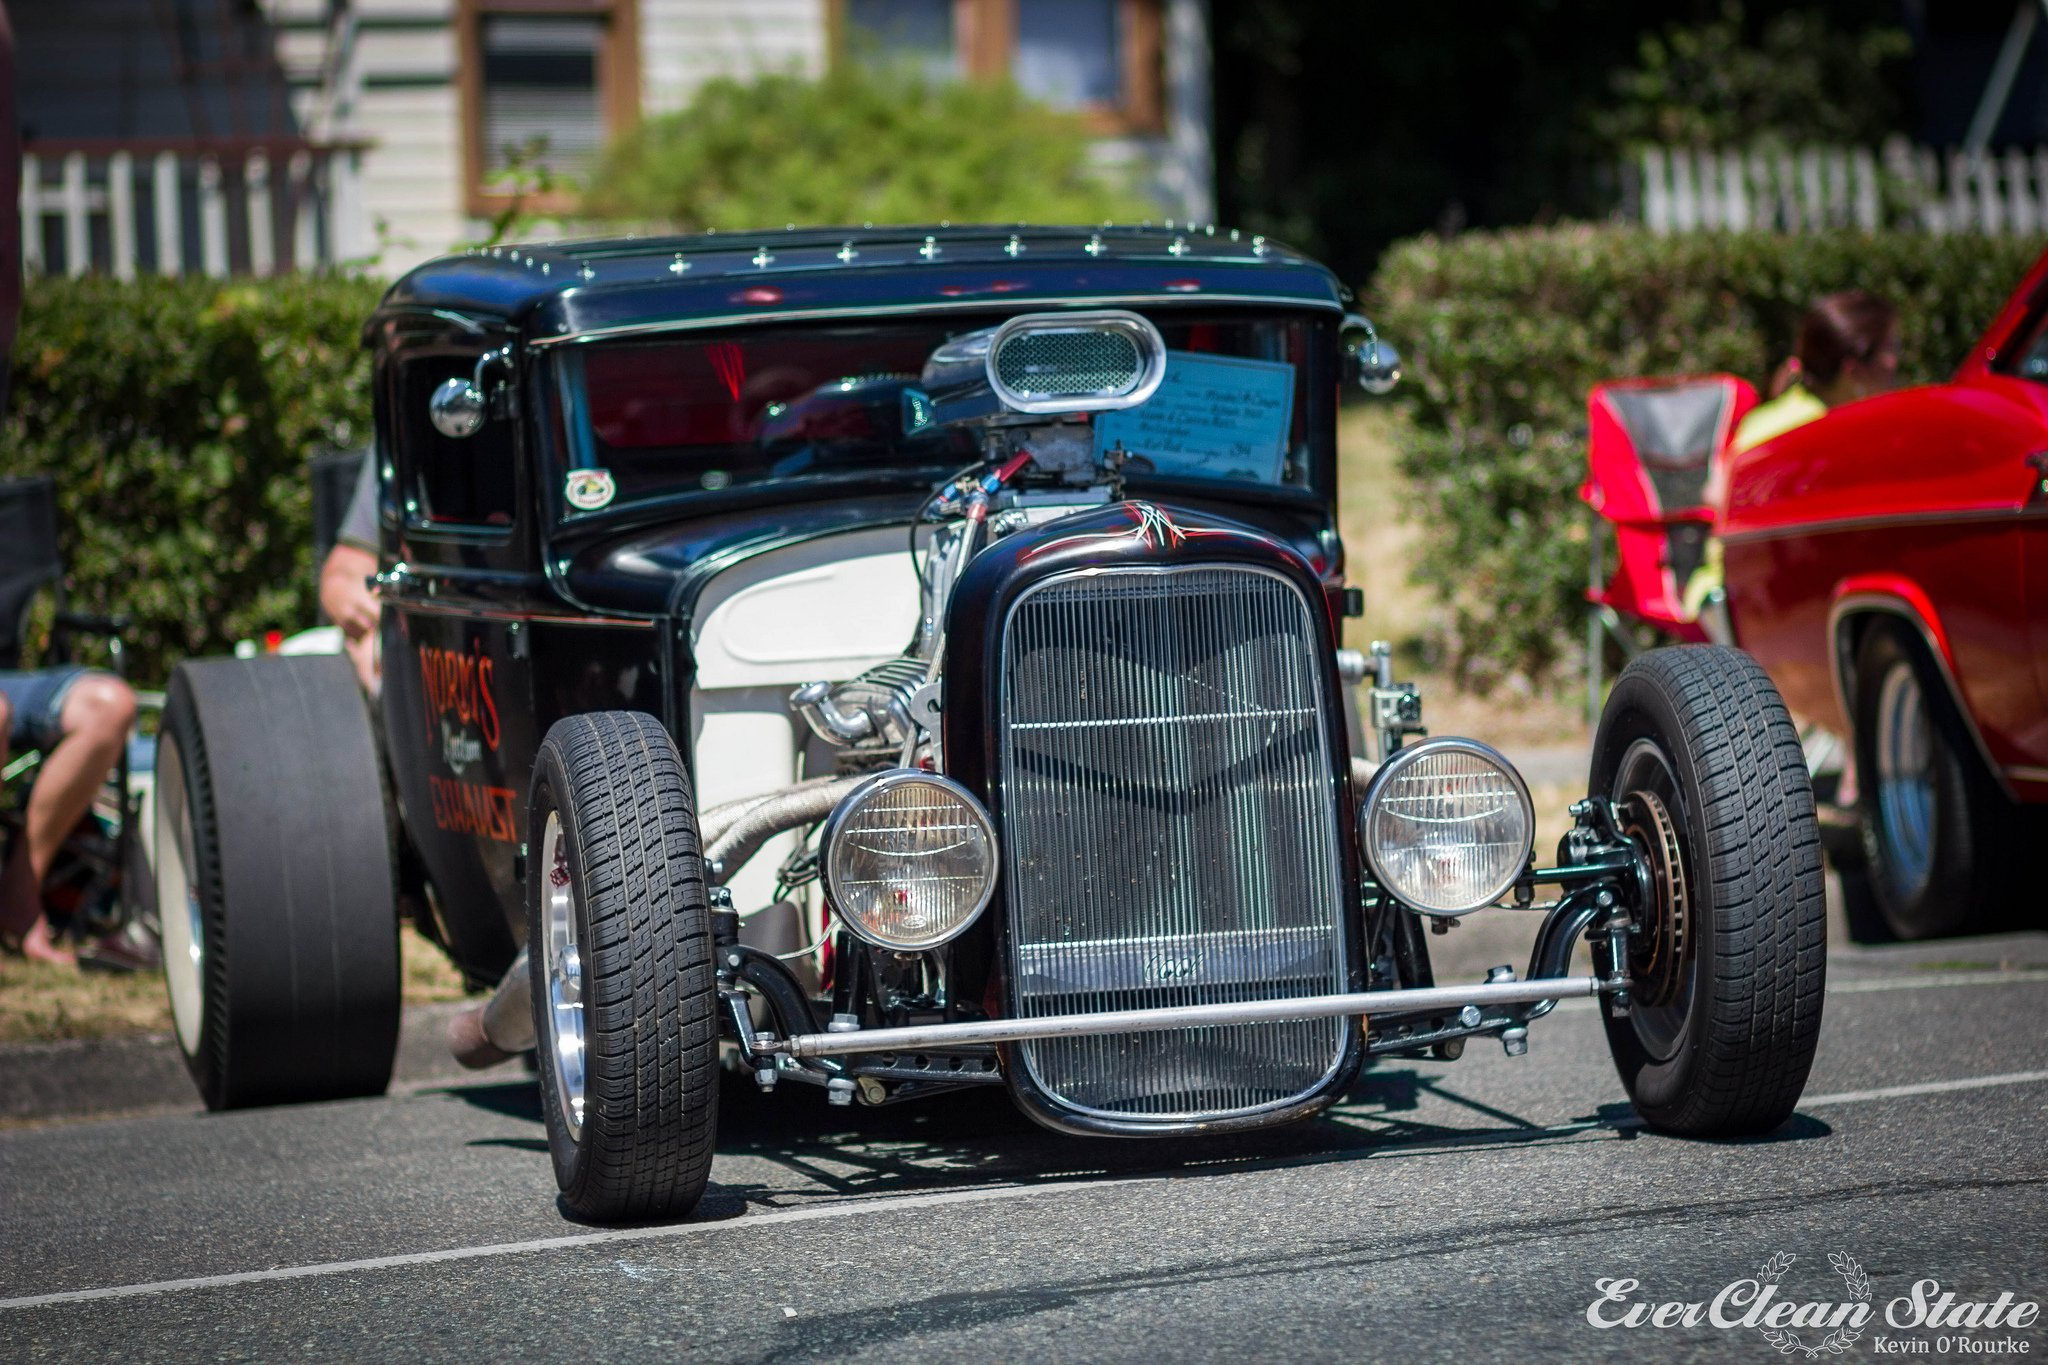 Generous Vintage Rod And Custom Ideas - Classic Cars Ideas - boiq.info